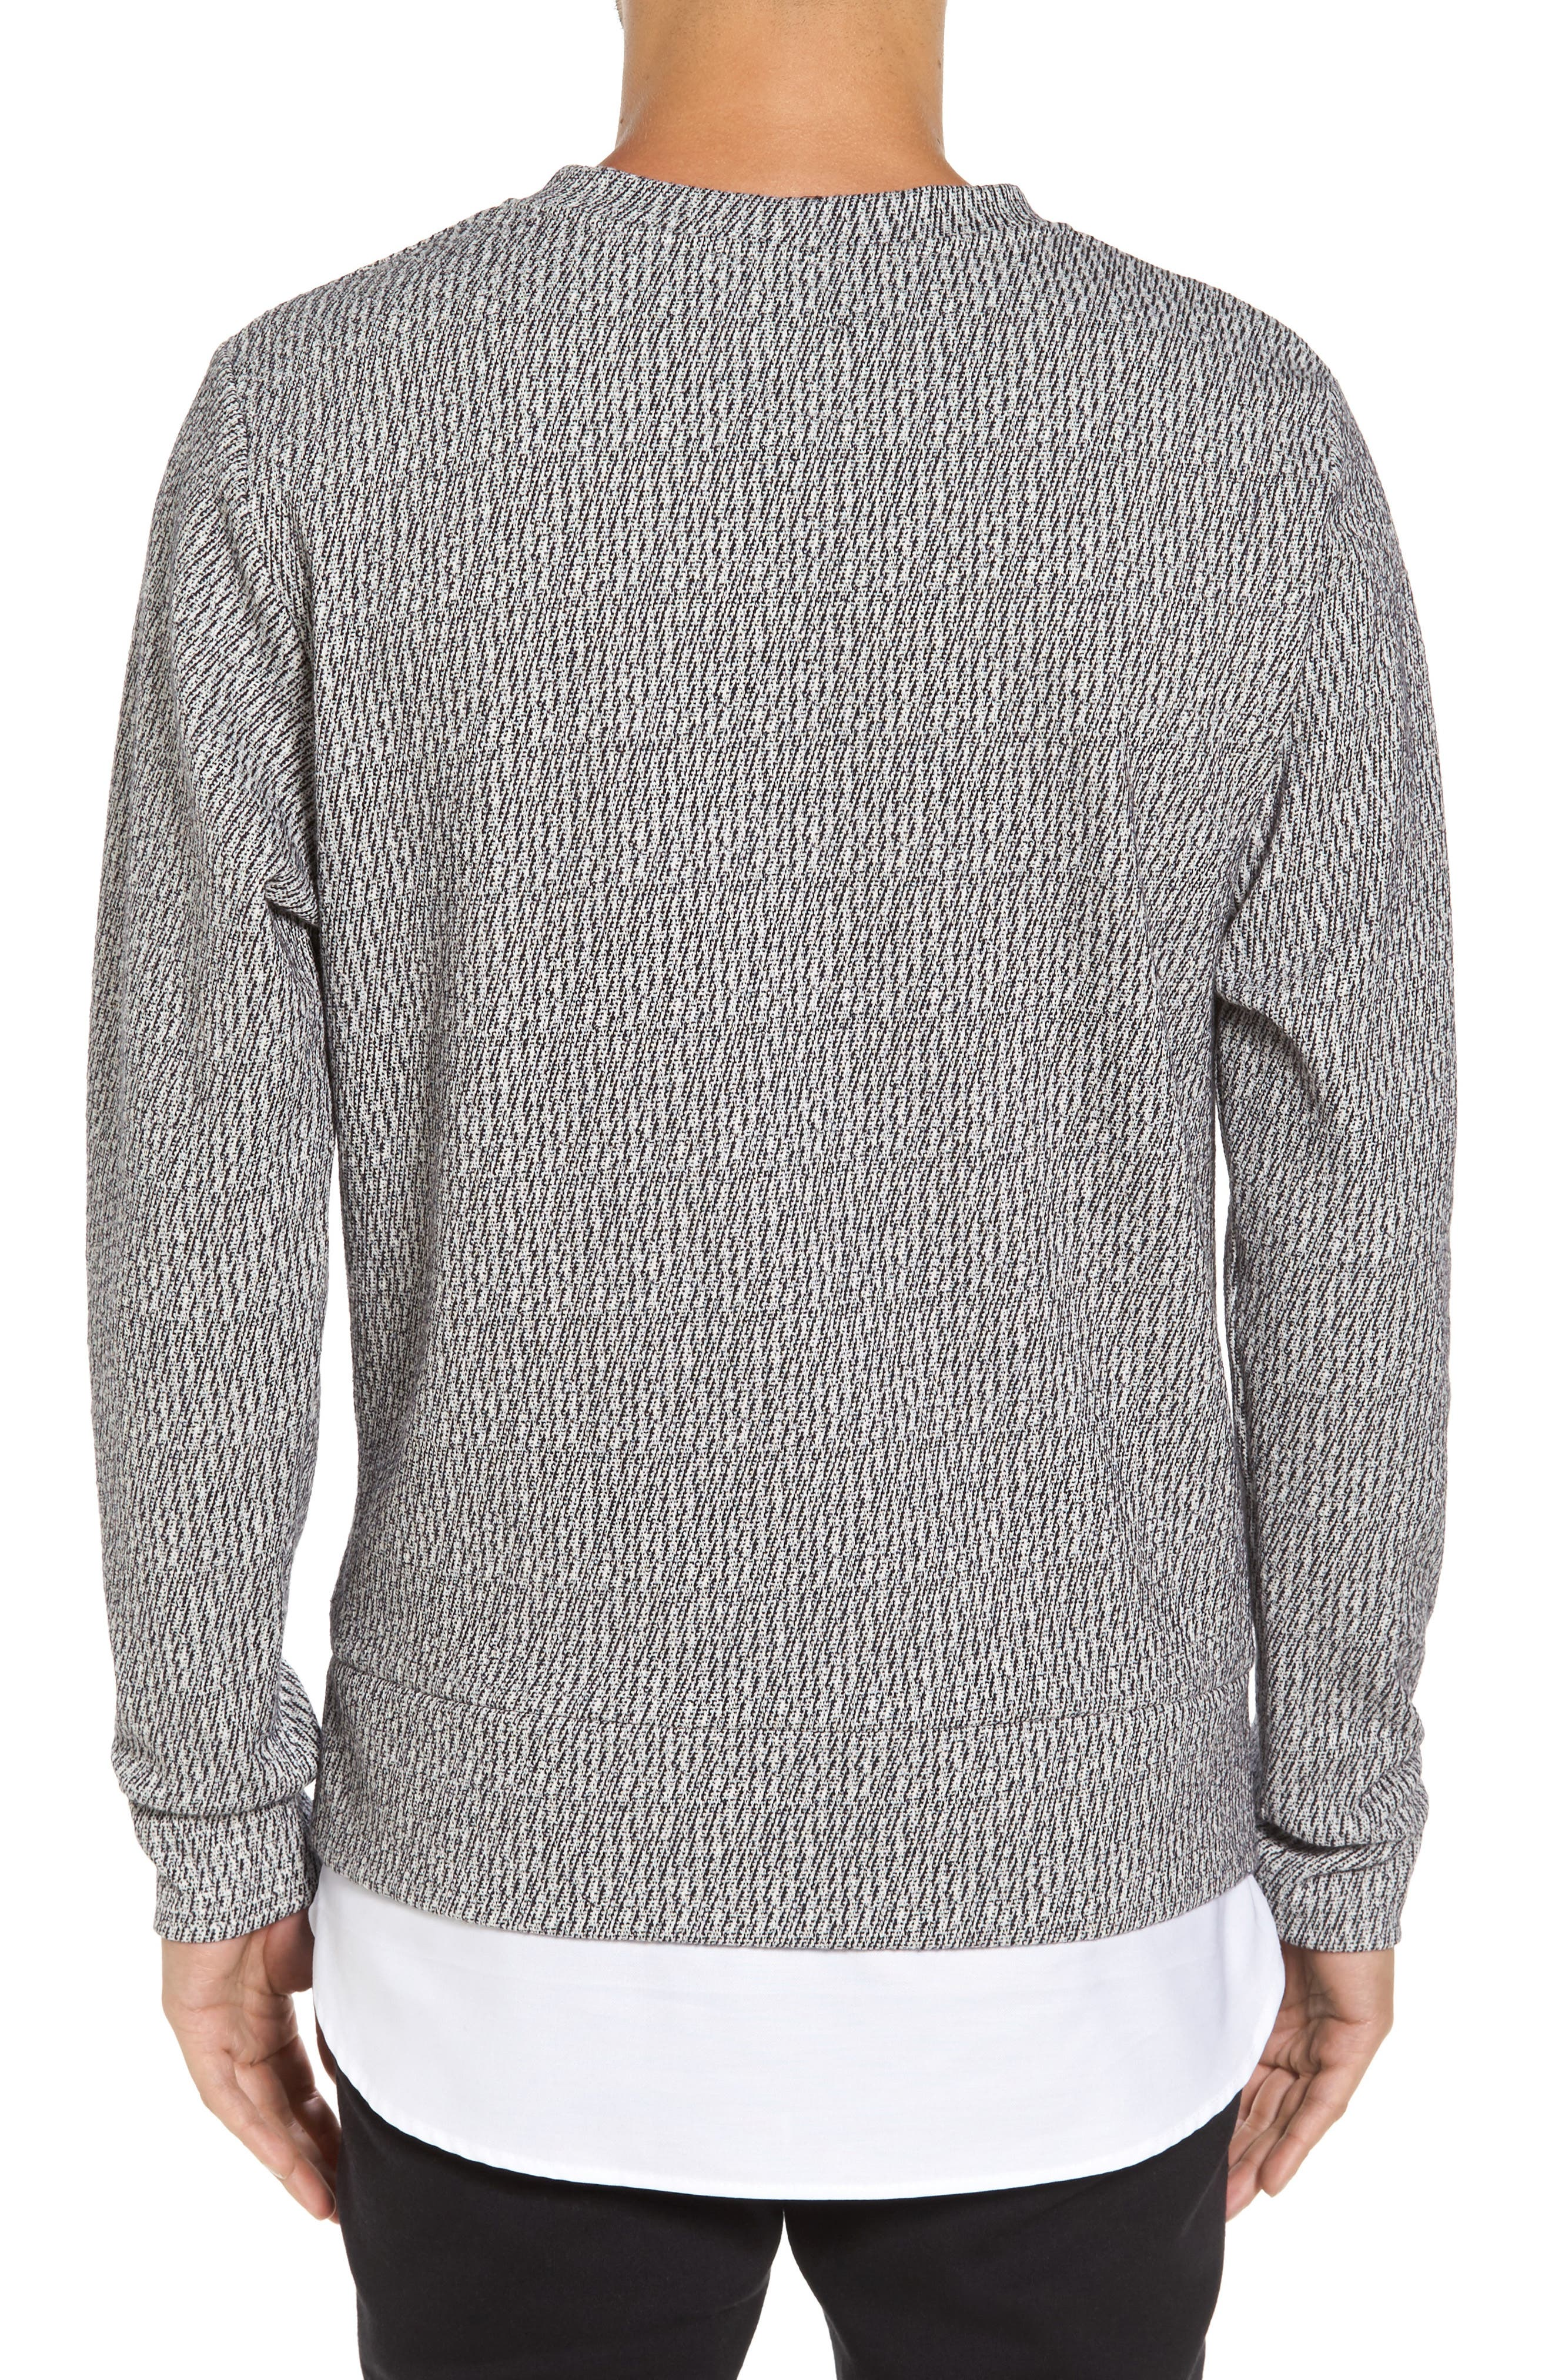 Double Layer Crewneck Sweater,                             Alternate thumbnail 2, color,                             020